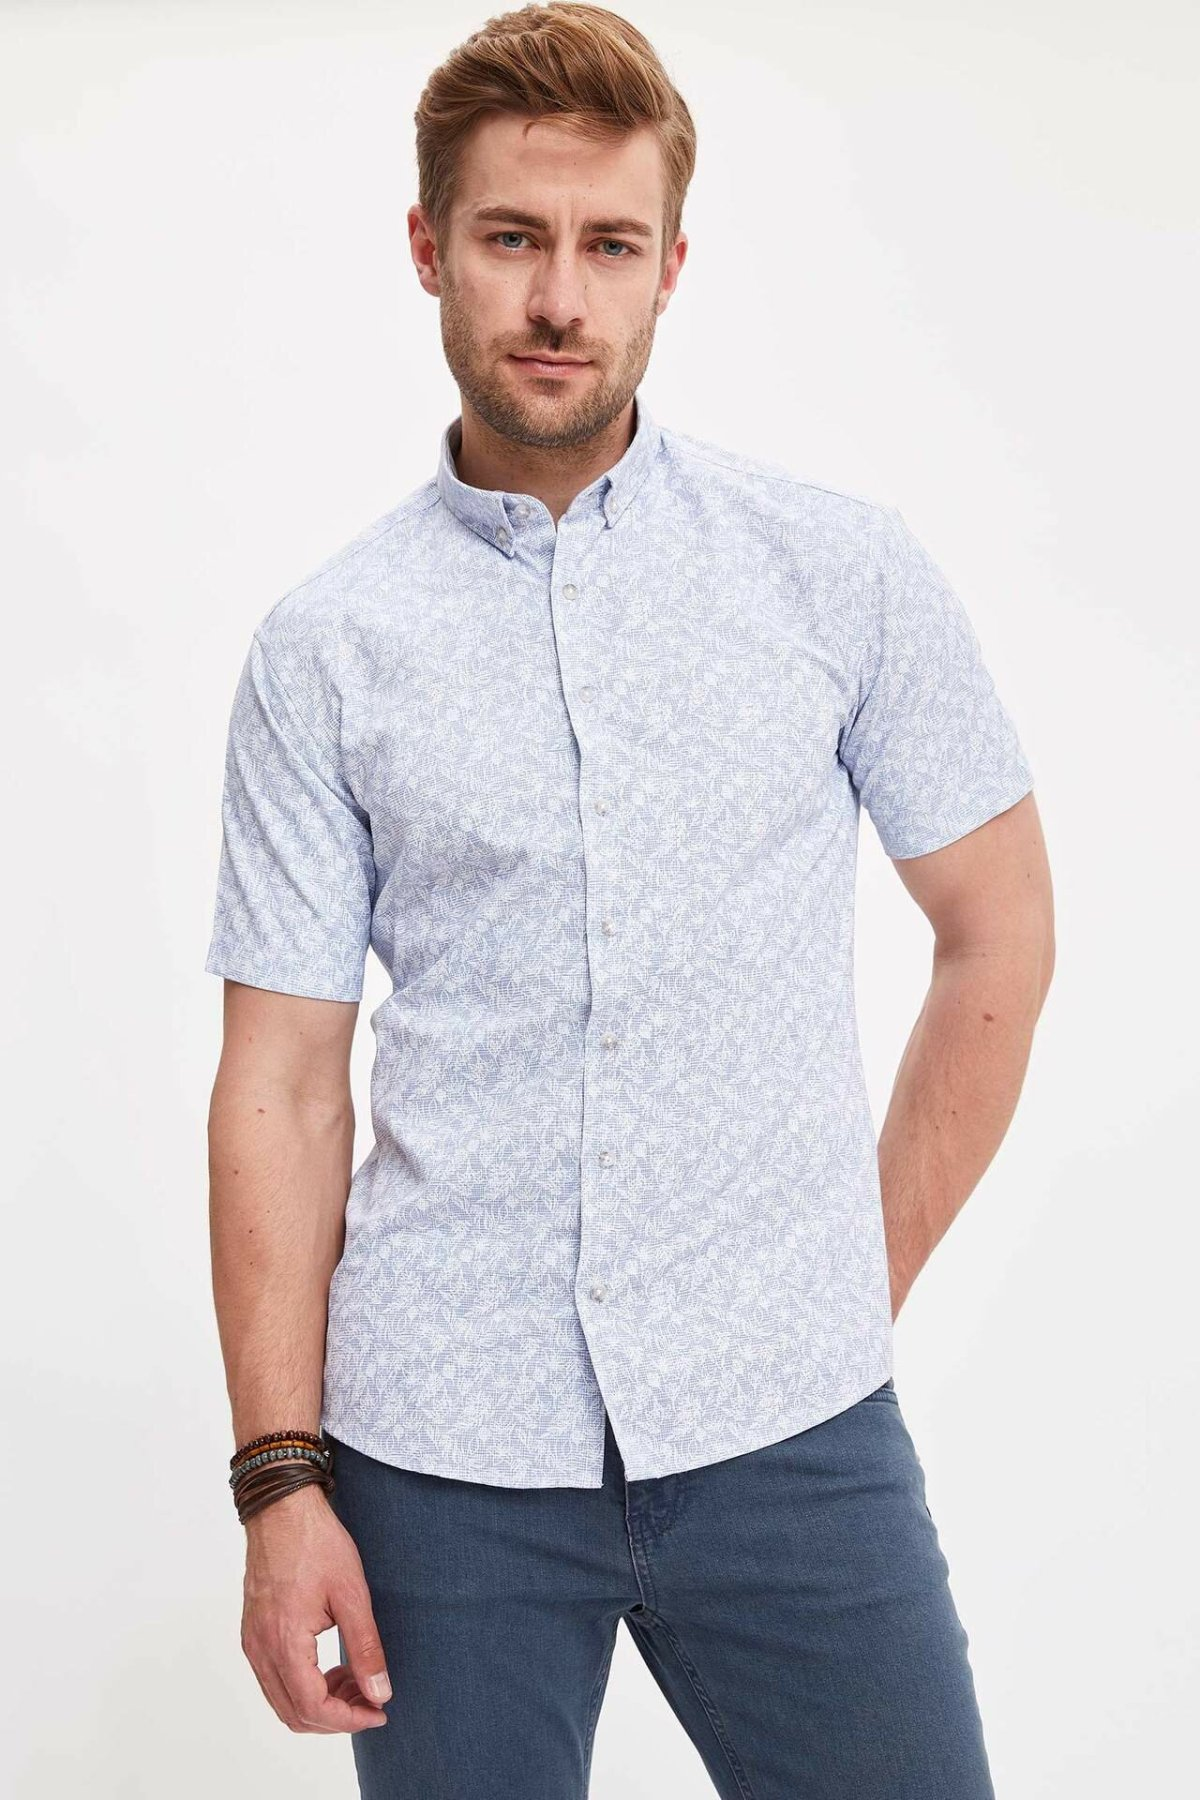 DeFacto Man Fashion Short Sleeve Shirt Summer Men's Light Color Pattern Casual Shirts Male Simple Leisure Blousers - L4573AZ19HS